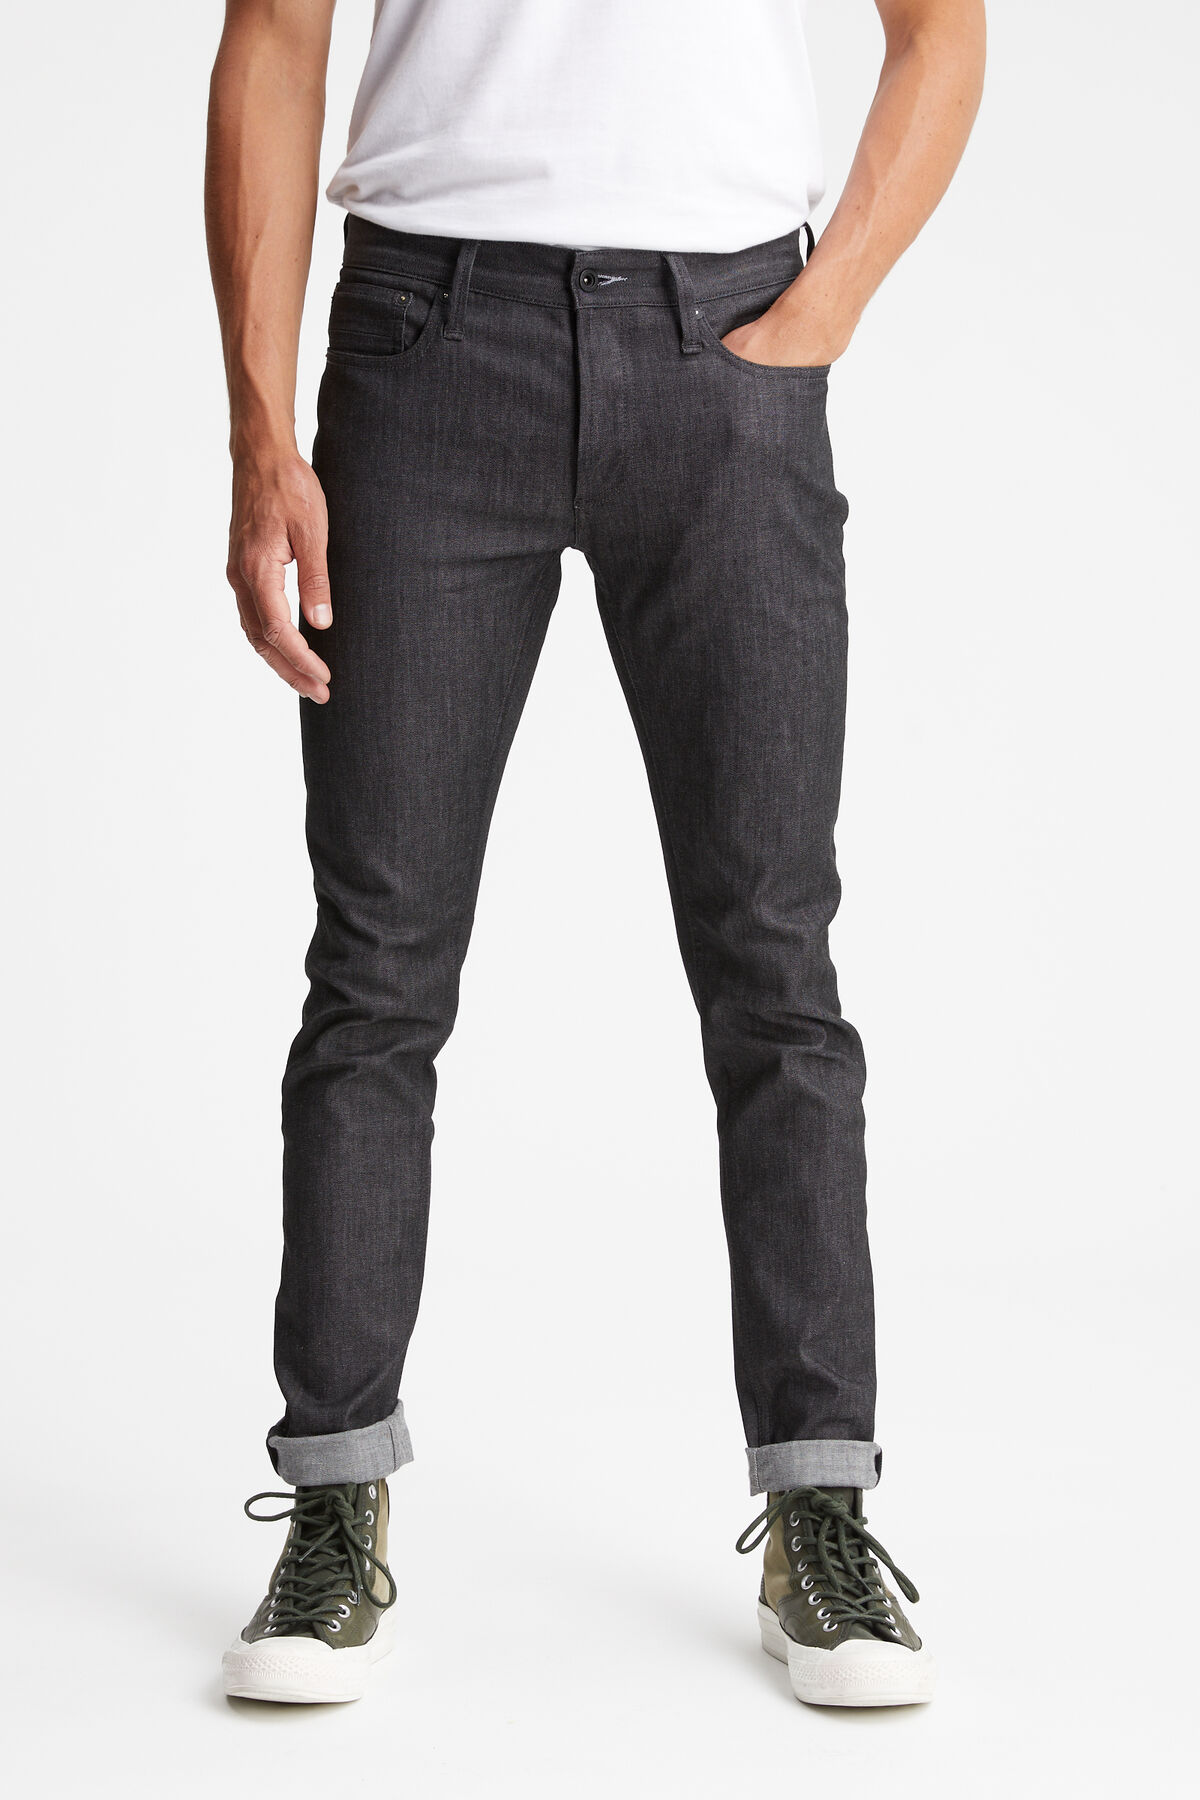 BOLT Black Rinse Washed - Skinny Fit